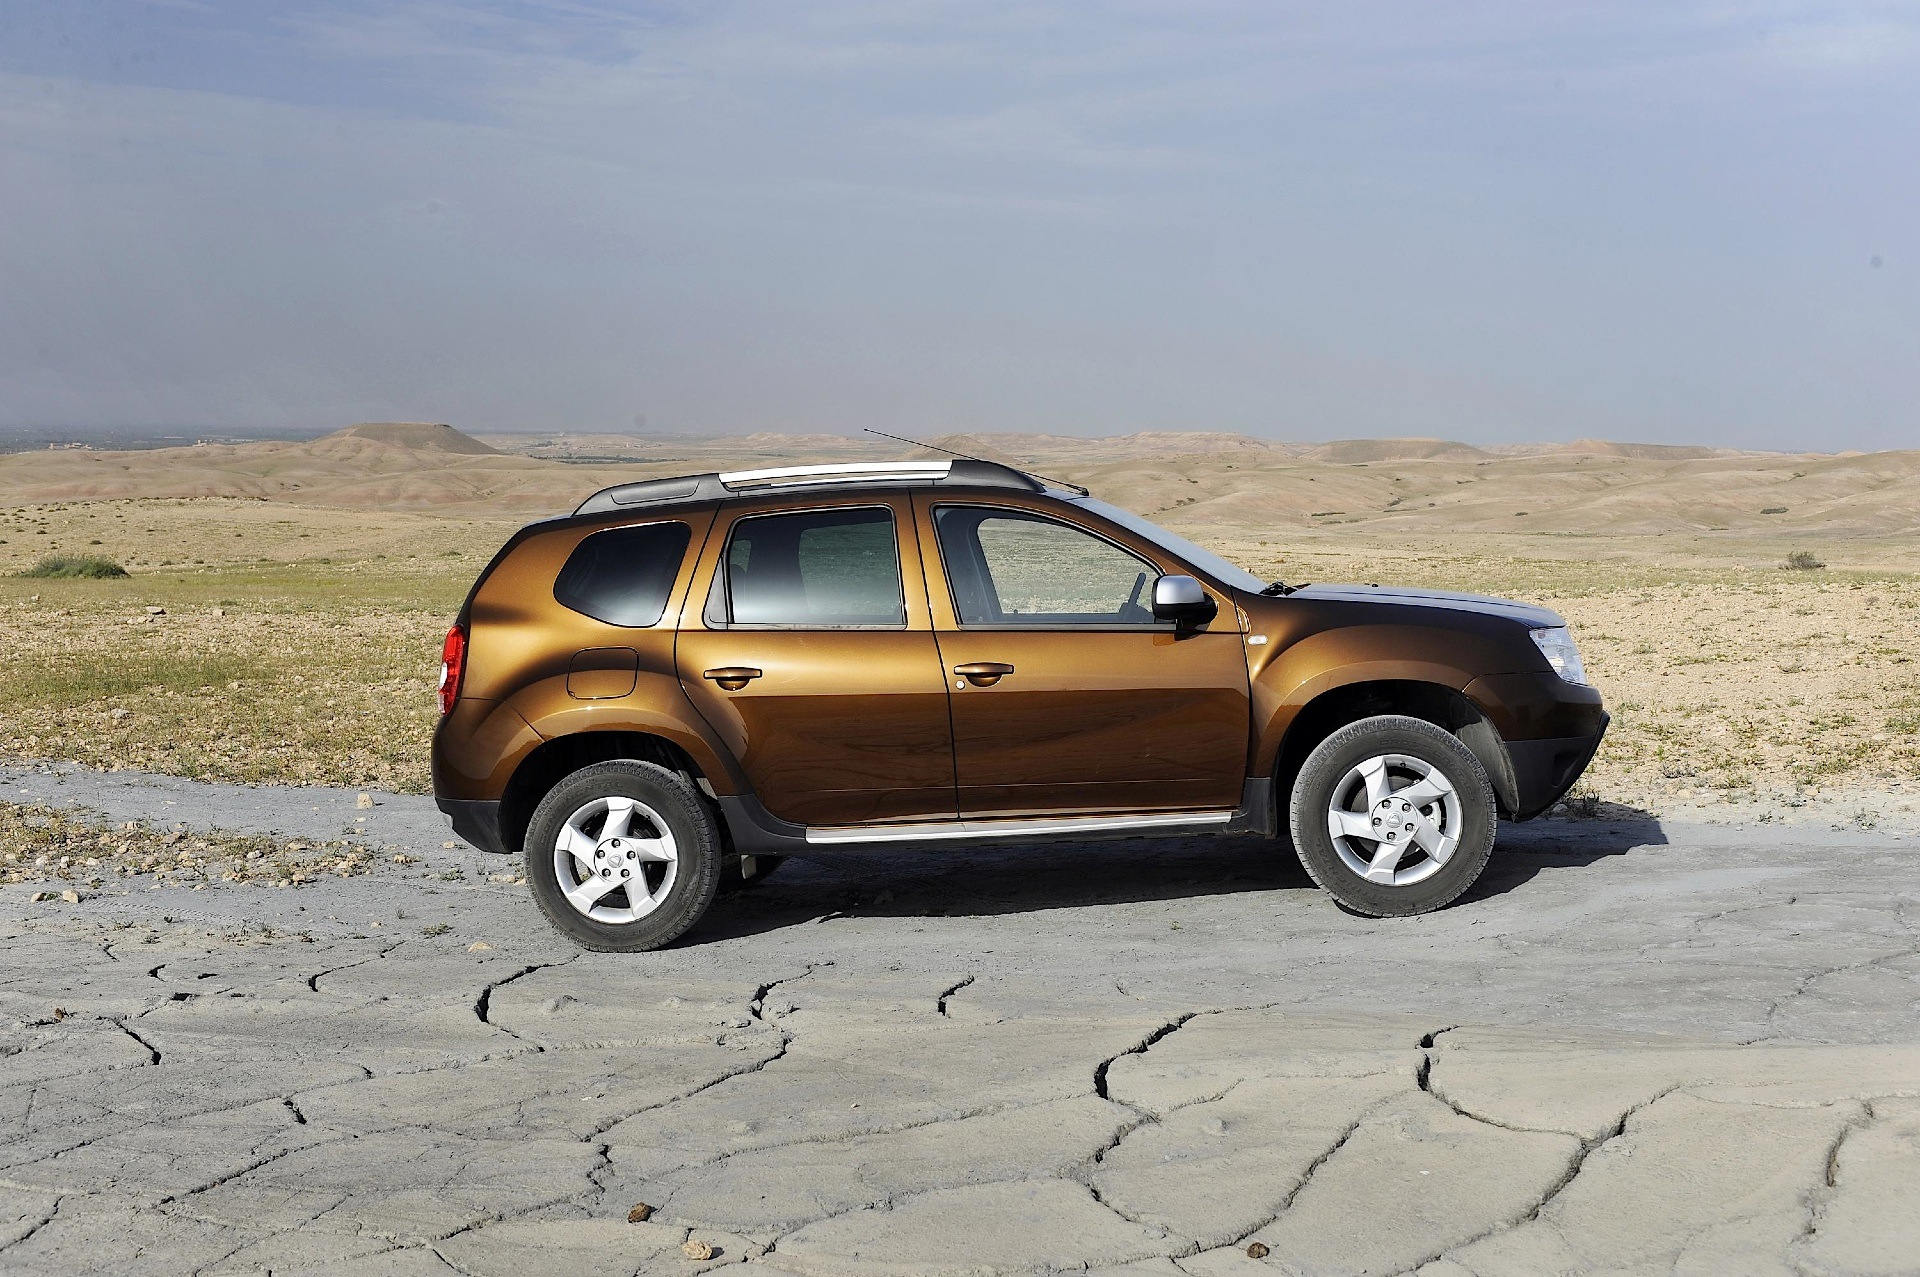 pin dacia duster logo hd car wallpapers on pinterest. Black Bedroom Furniture Sets. Home Design Ideas